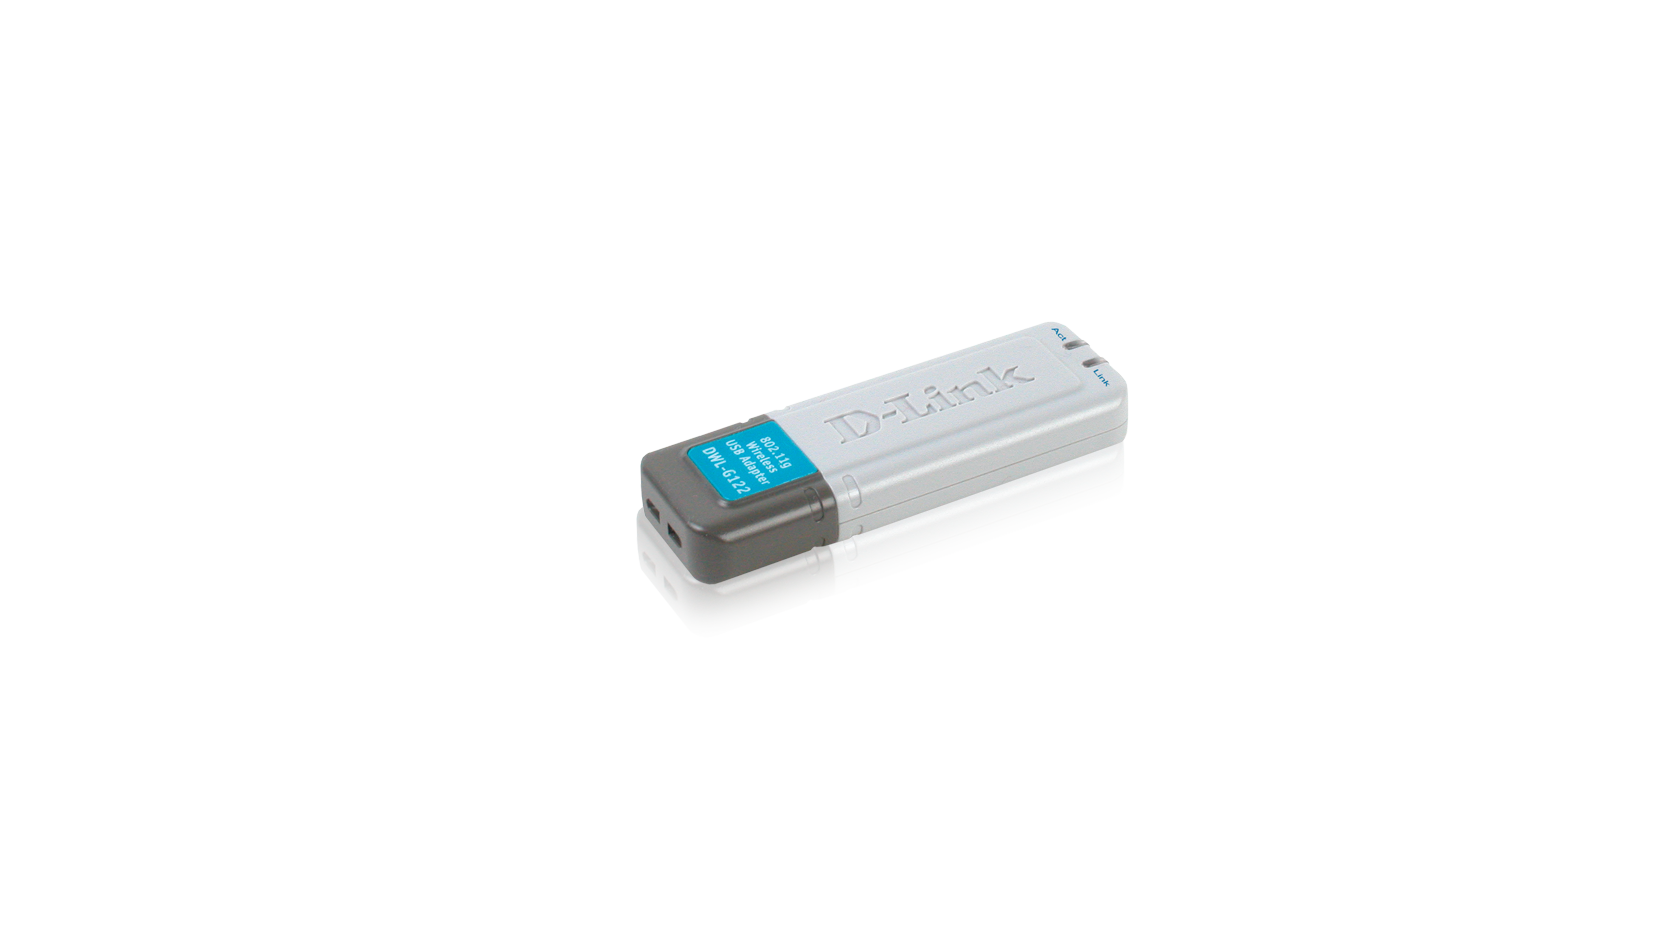 D LINK WIRELESS USB ADAPTER DWL G122 DOWNLOAD DRIVERS